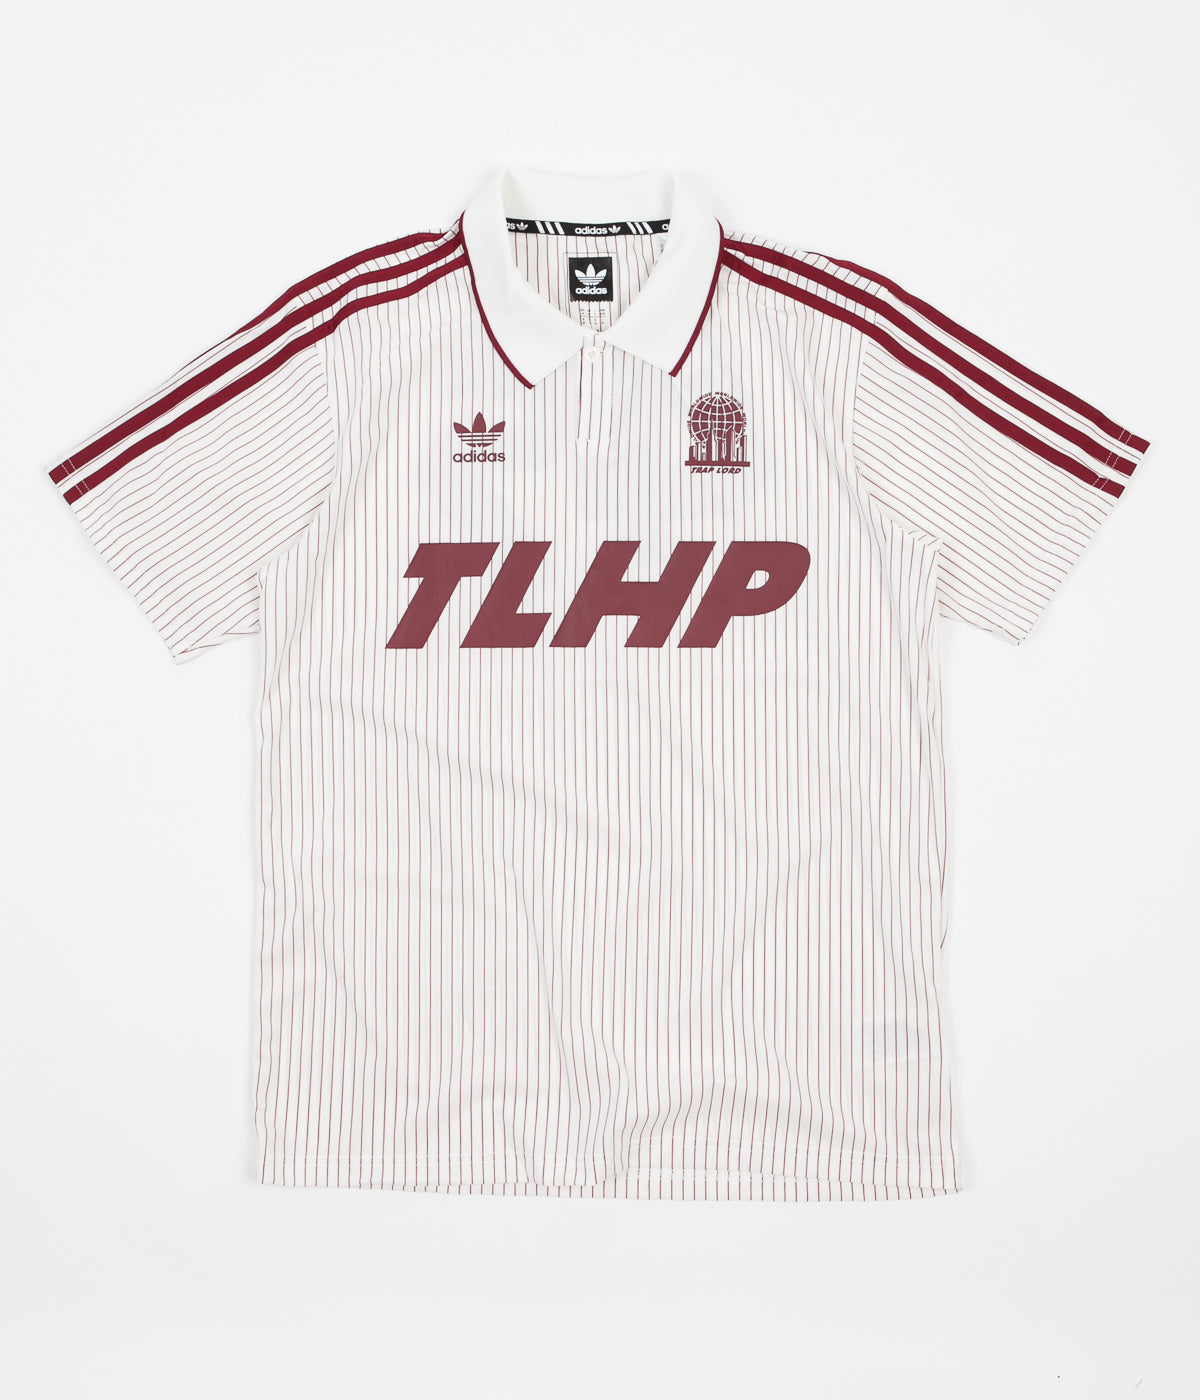 Adidas x Trap Lord Ferg Jersey - Off White / Collegiate Burgundy